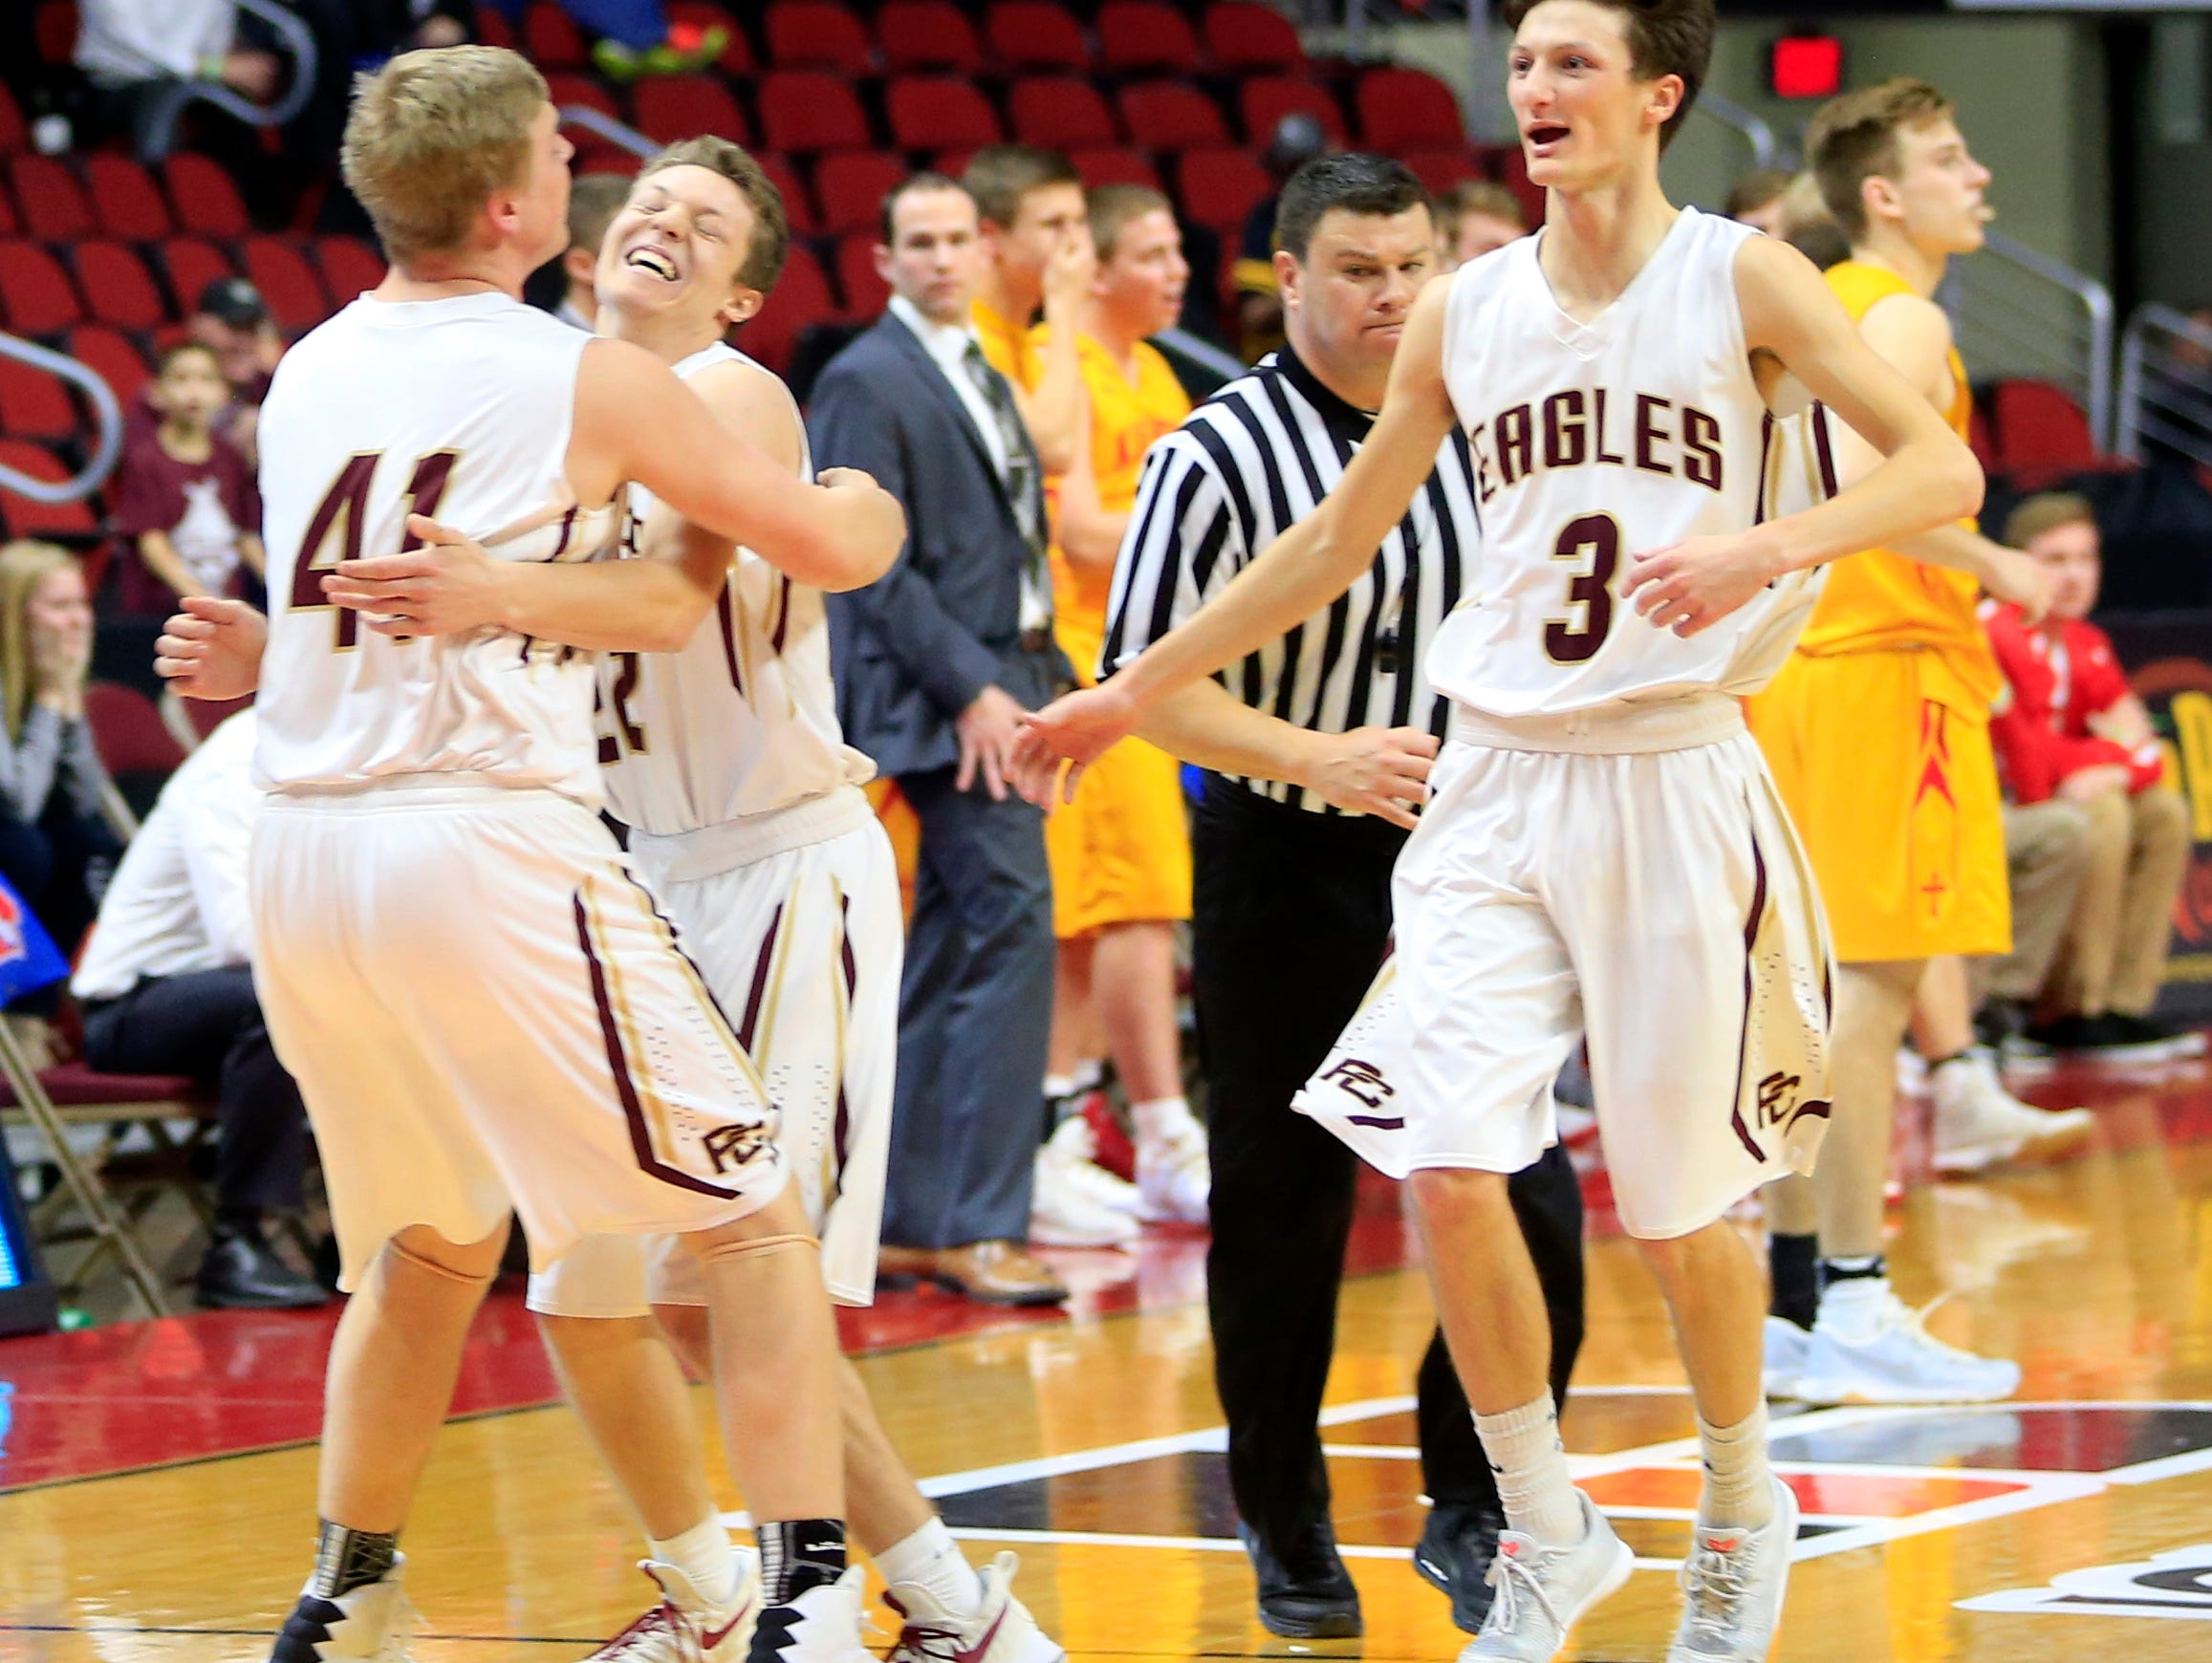 Pella Christian celebrates a win over Kuemper Catholic in the 2A semifinal game Thursday, March 9, 2017.